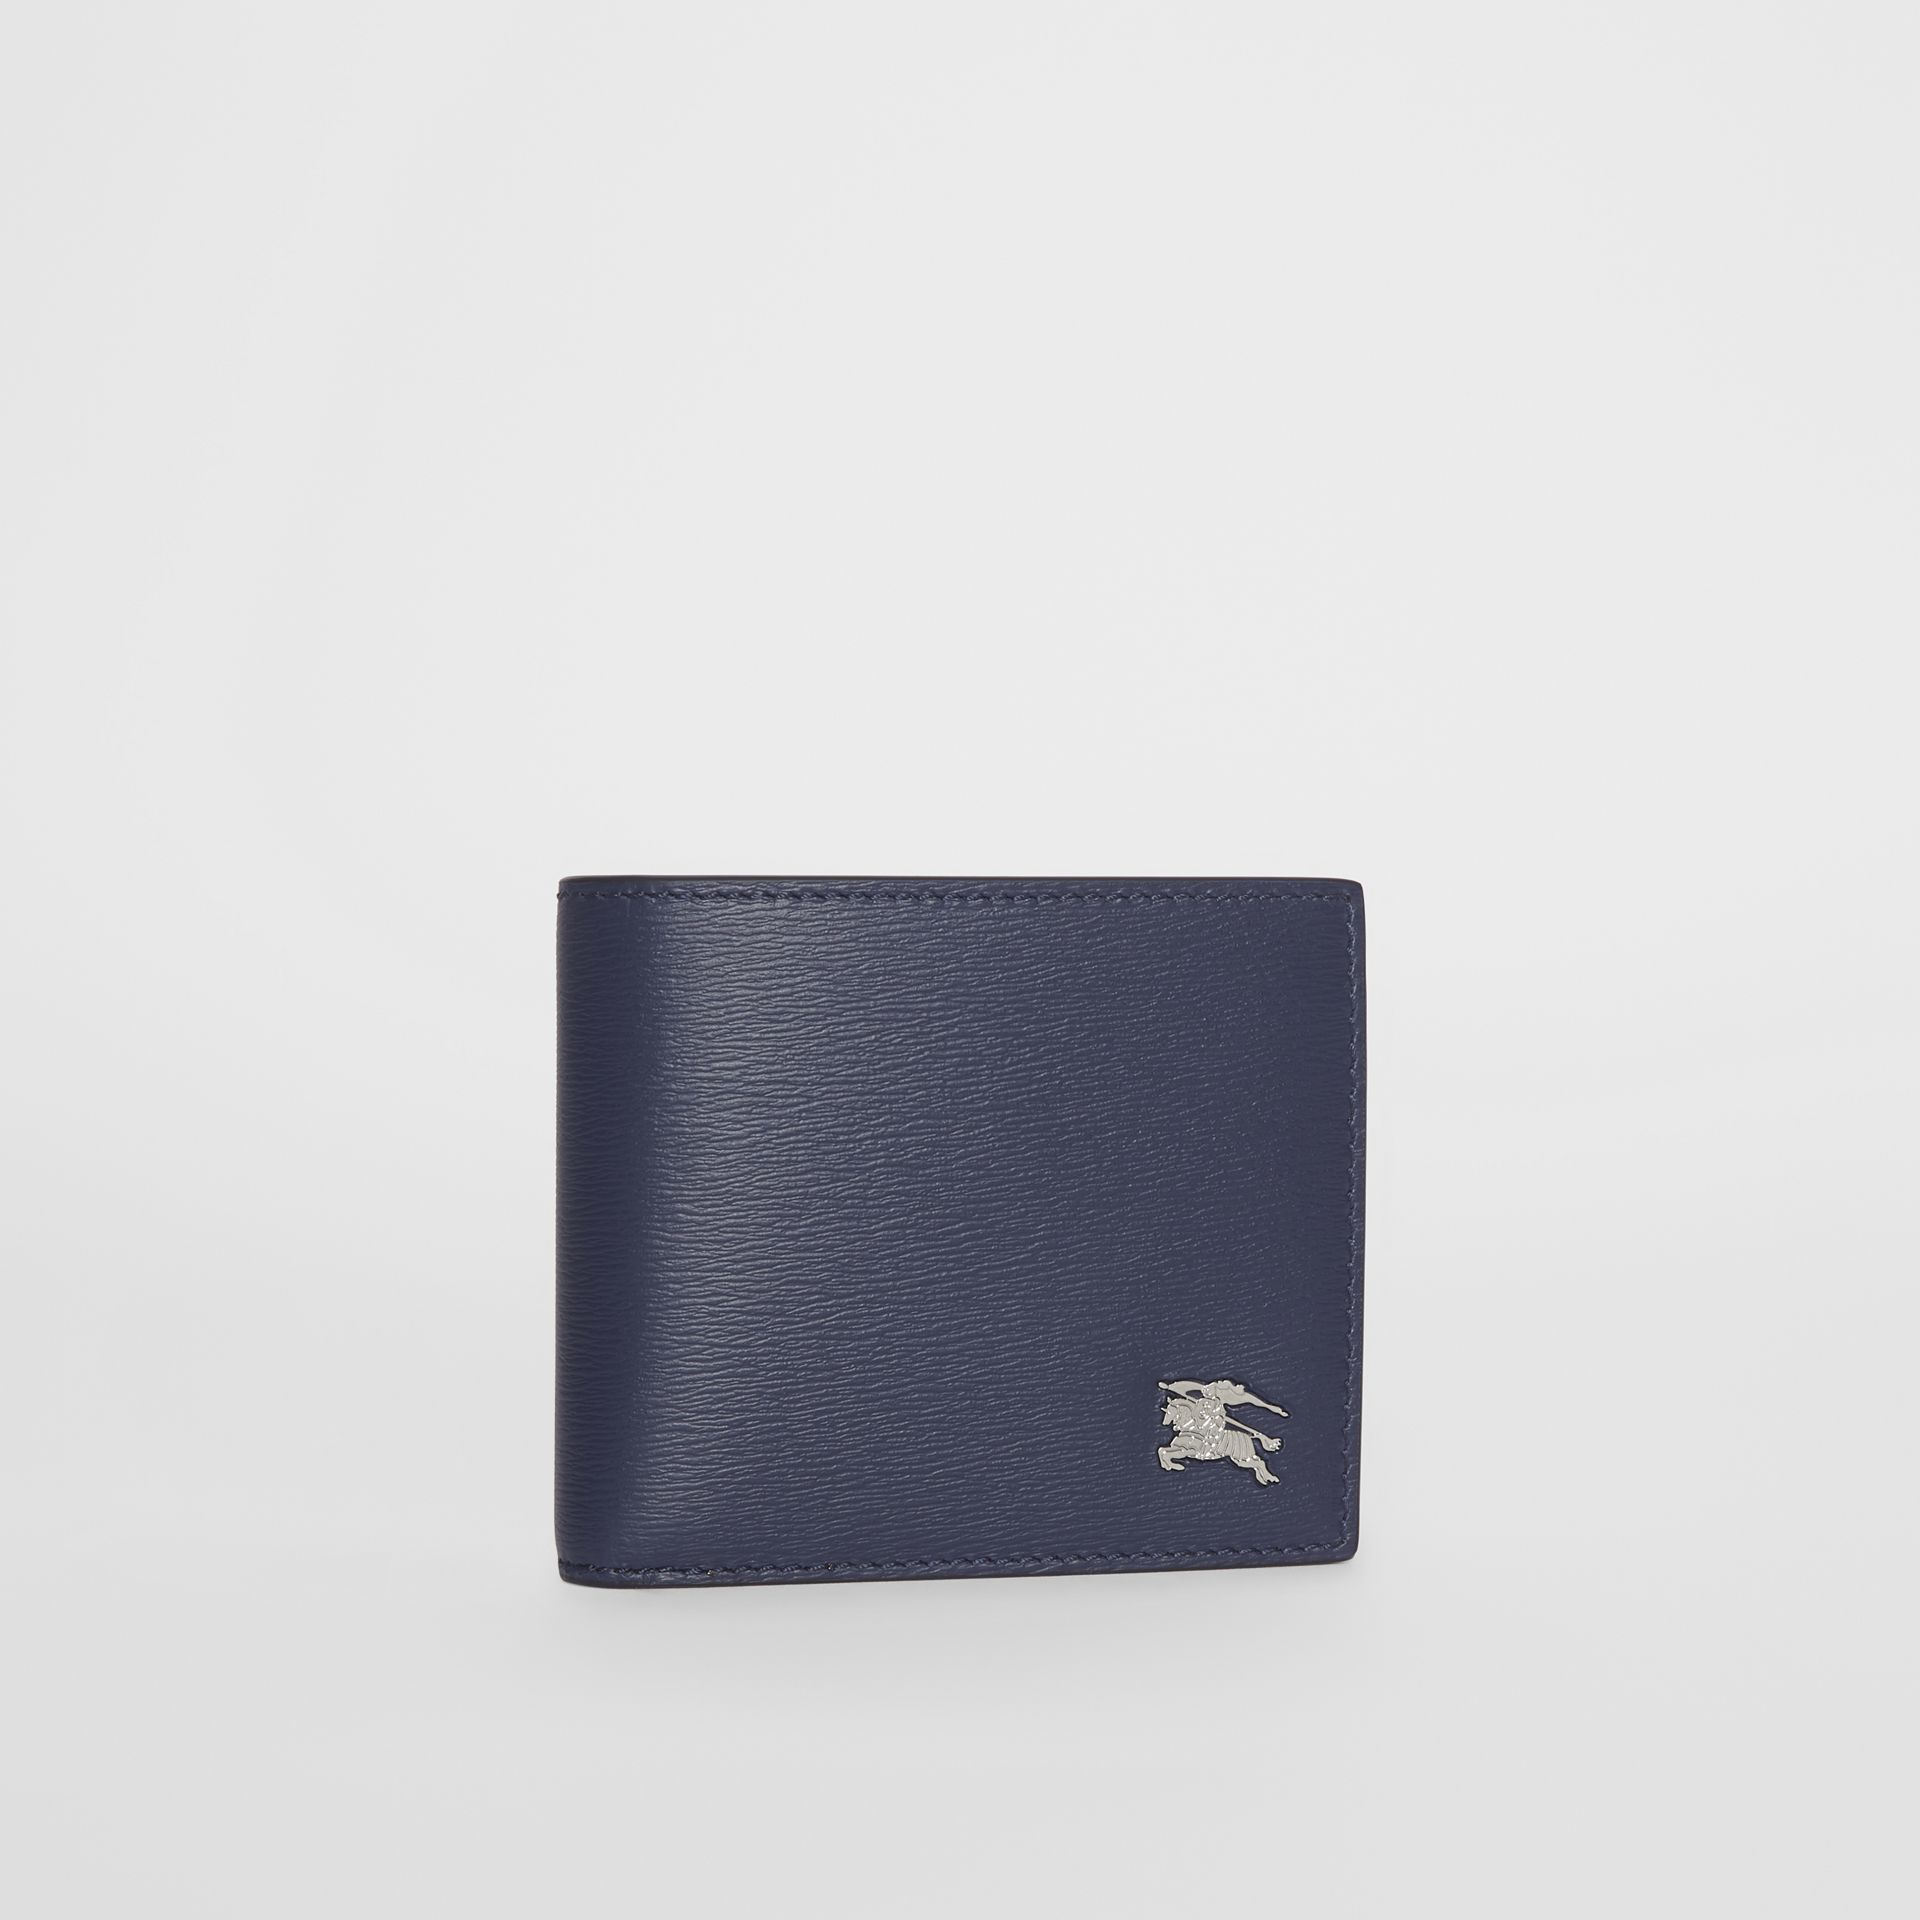 London Leather Bifold Wallet with ID Card Case in Navy - Men | Burberry - gallery image 3